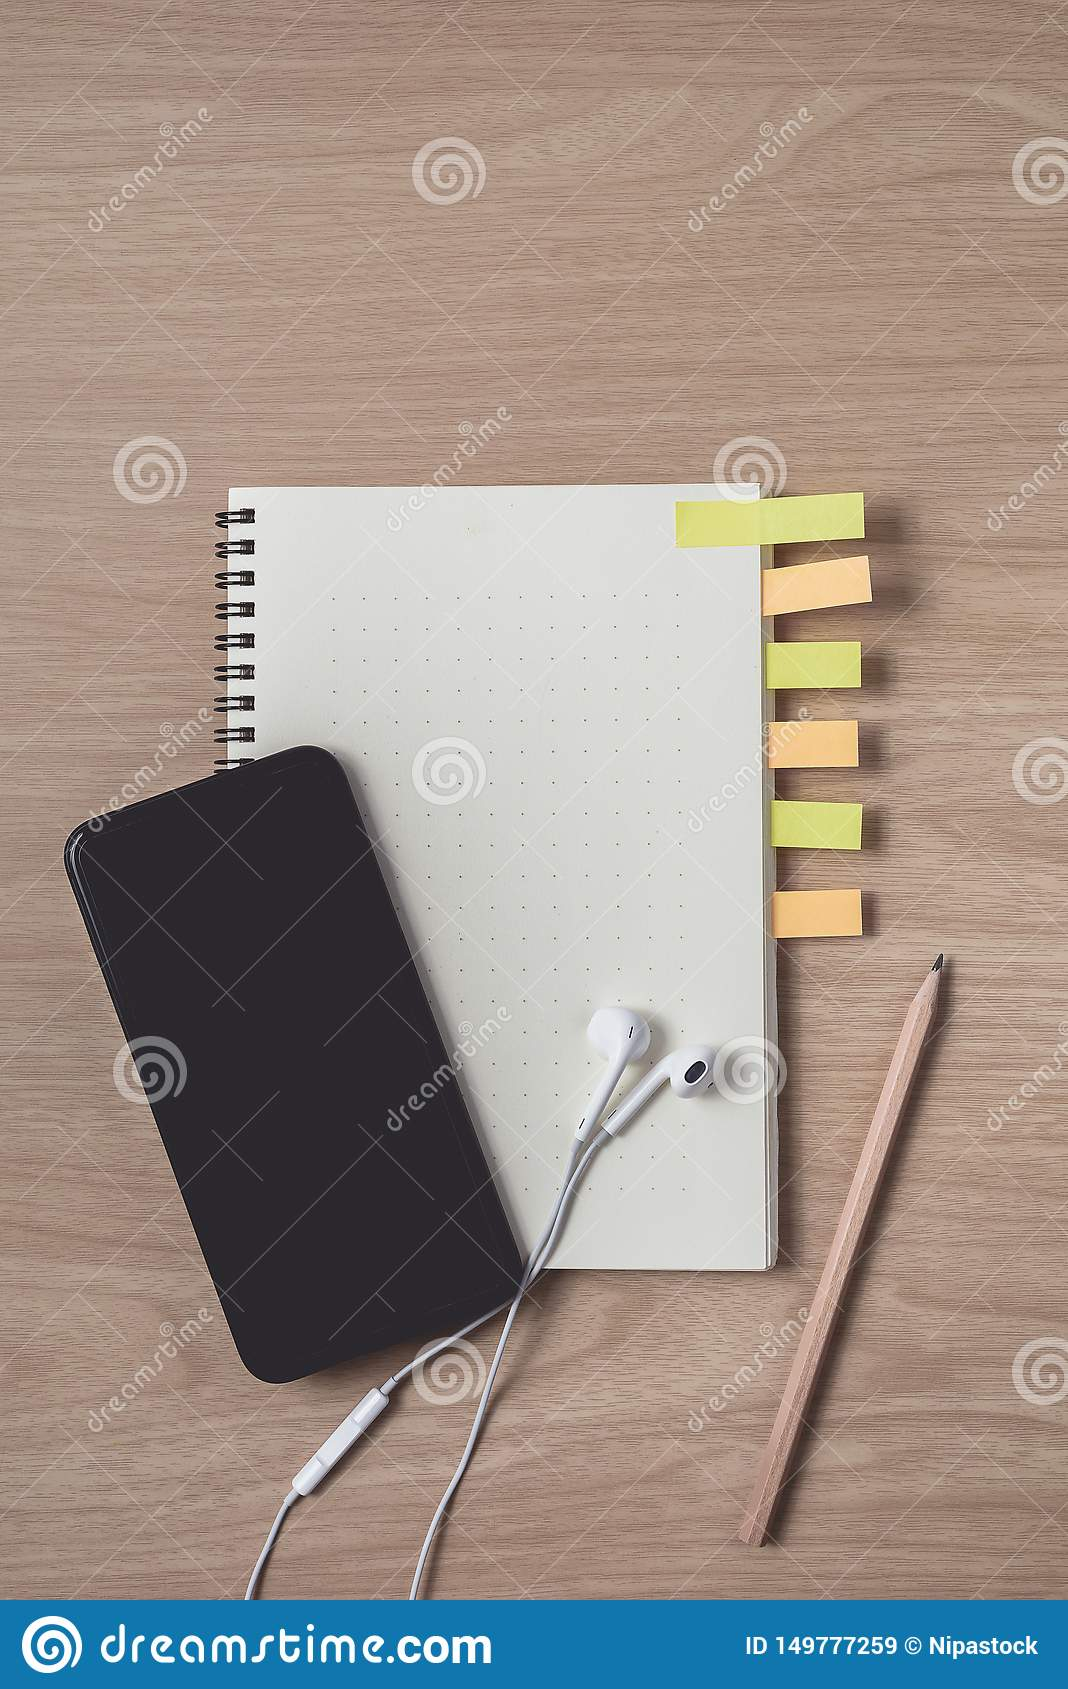 Workspace with diary or notebook and smart phone, Earphone, pencil, sticky notes on wooden background